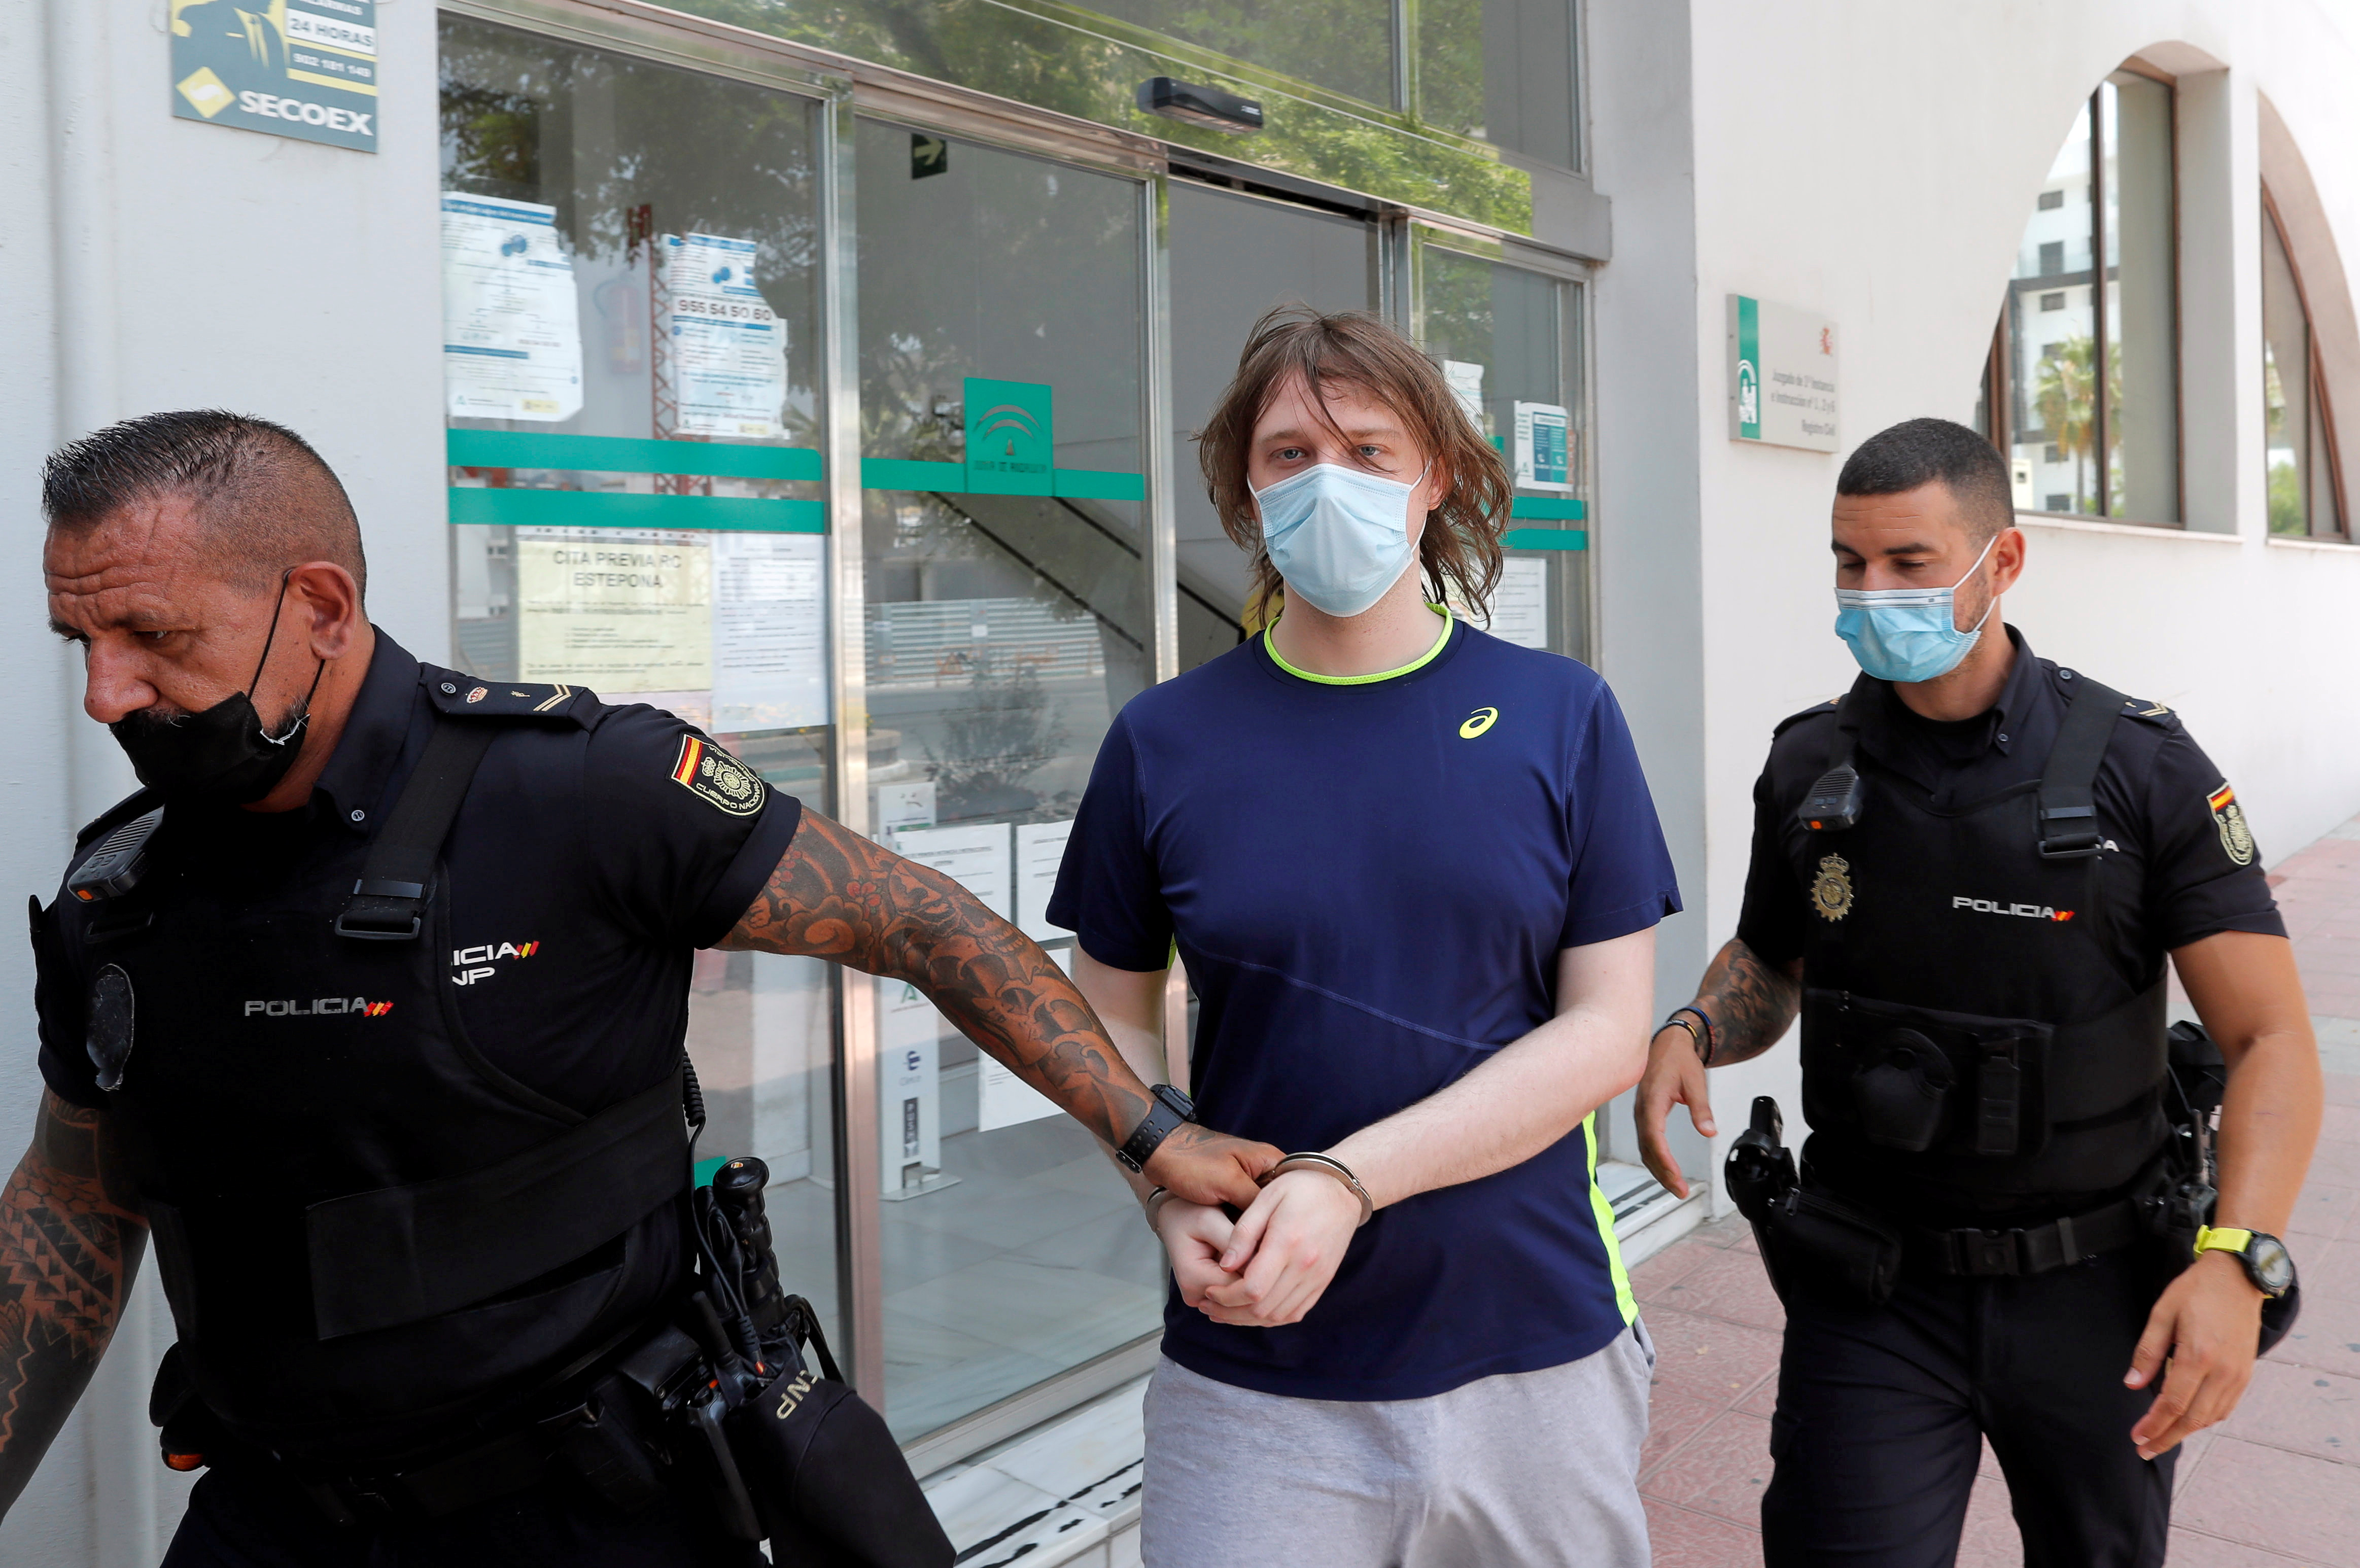 22-year-old British citizen Joseph James O'Connor is lead by Spanish police officers as he leaves a court after being arrested in connection with an alleged July 2020 Twitter hack which compromised the accounts of high-profile politicians and celebrities, according to the U.S. Justice Department, in Estepona, Spain, July 22, 2021. REUTERS/Jon Nazca